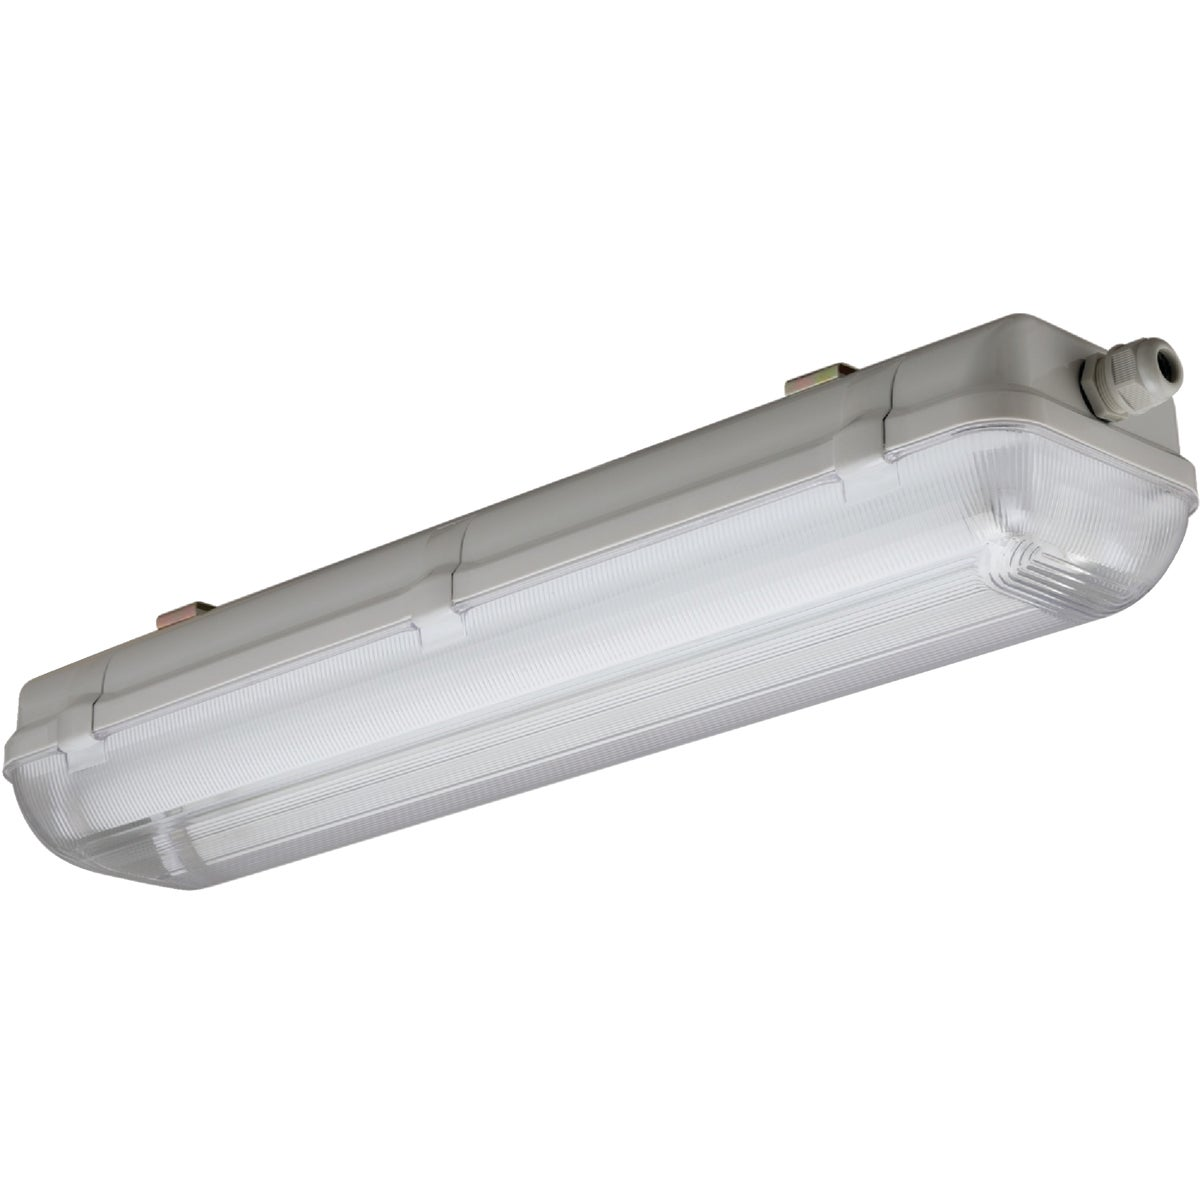 Lithonia Lighting 4' T8 2BULB ENCL FIXTURE XWL 232 120 RE